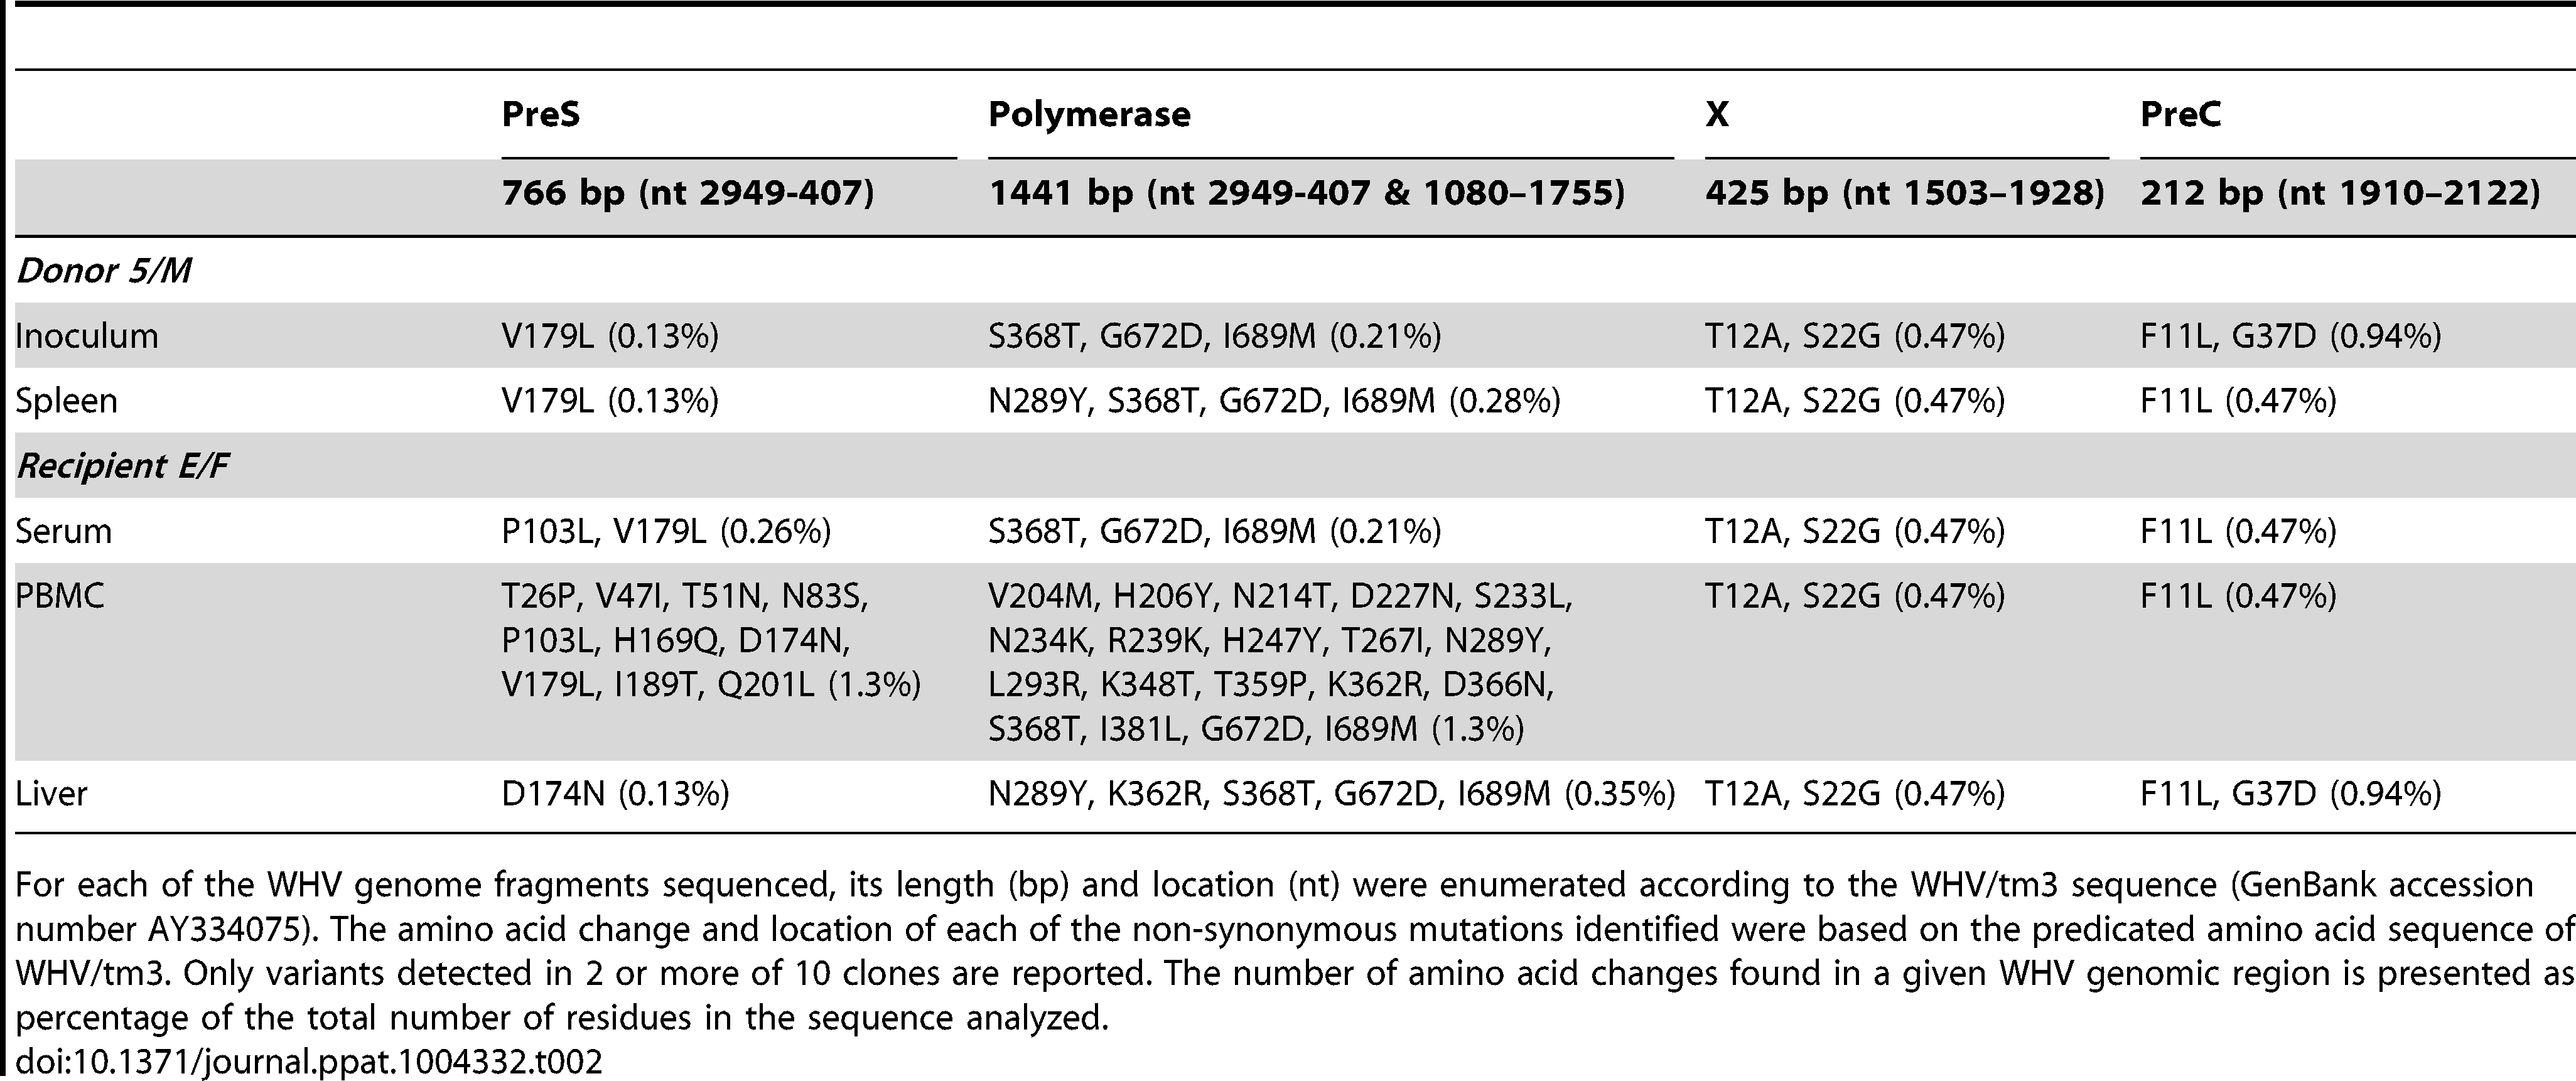 Non-synonymous mutations identified in WHV sequence of the inoculum prepared from the liver WHV-negative phase of POI and in the spleen from 8/M donor and in serum, PBMC and liver of E/F recipient injected with this inoculum.